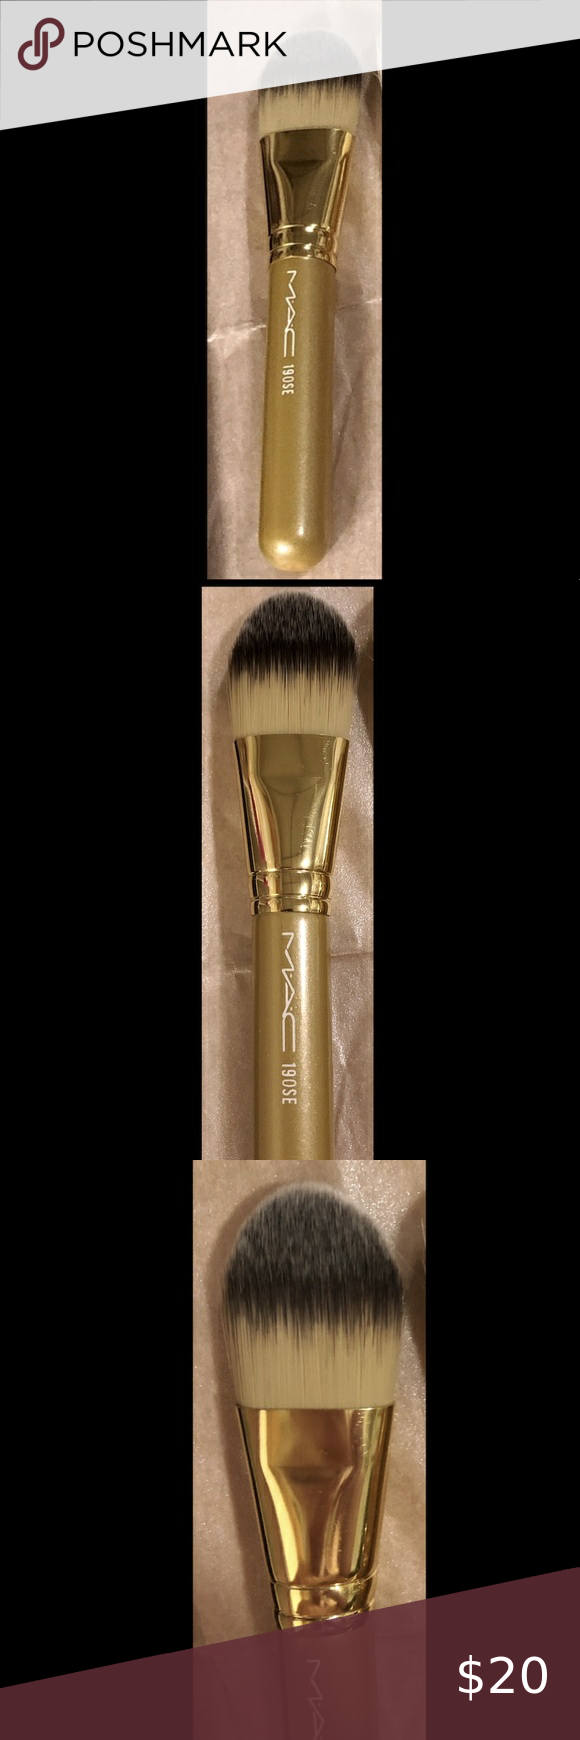 MAC 190SE Natural Foundation brush travel size in 2020